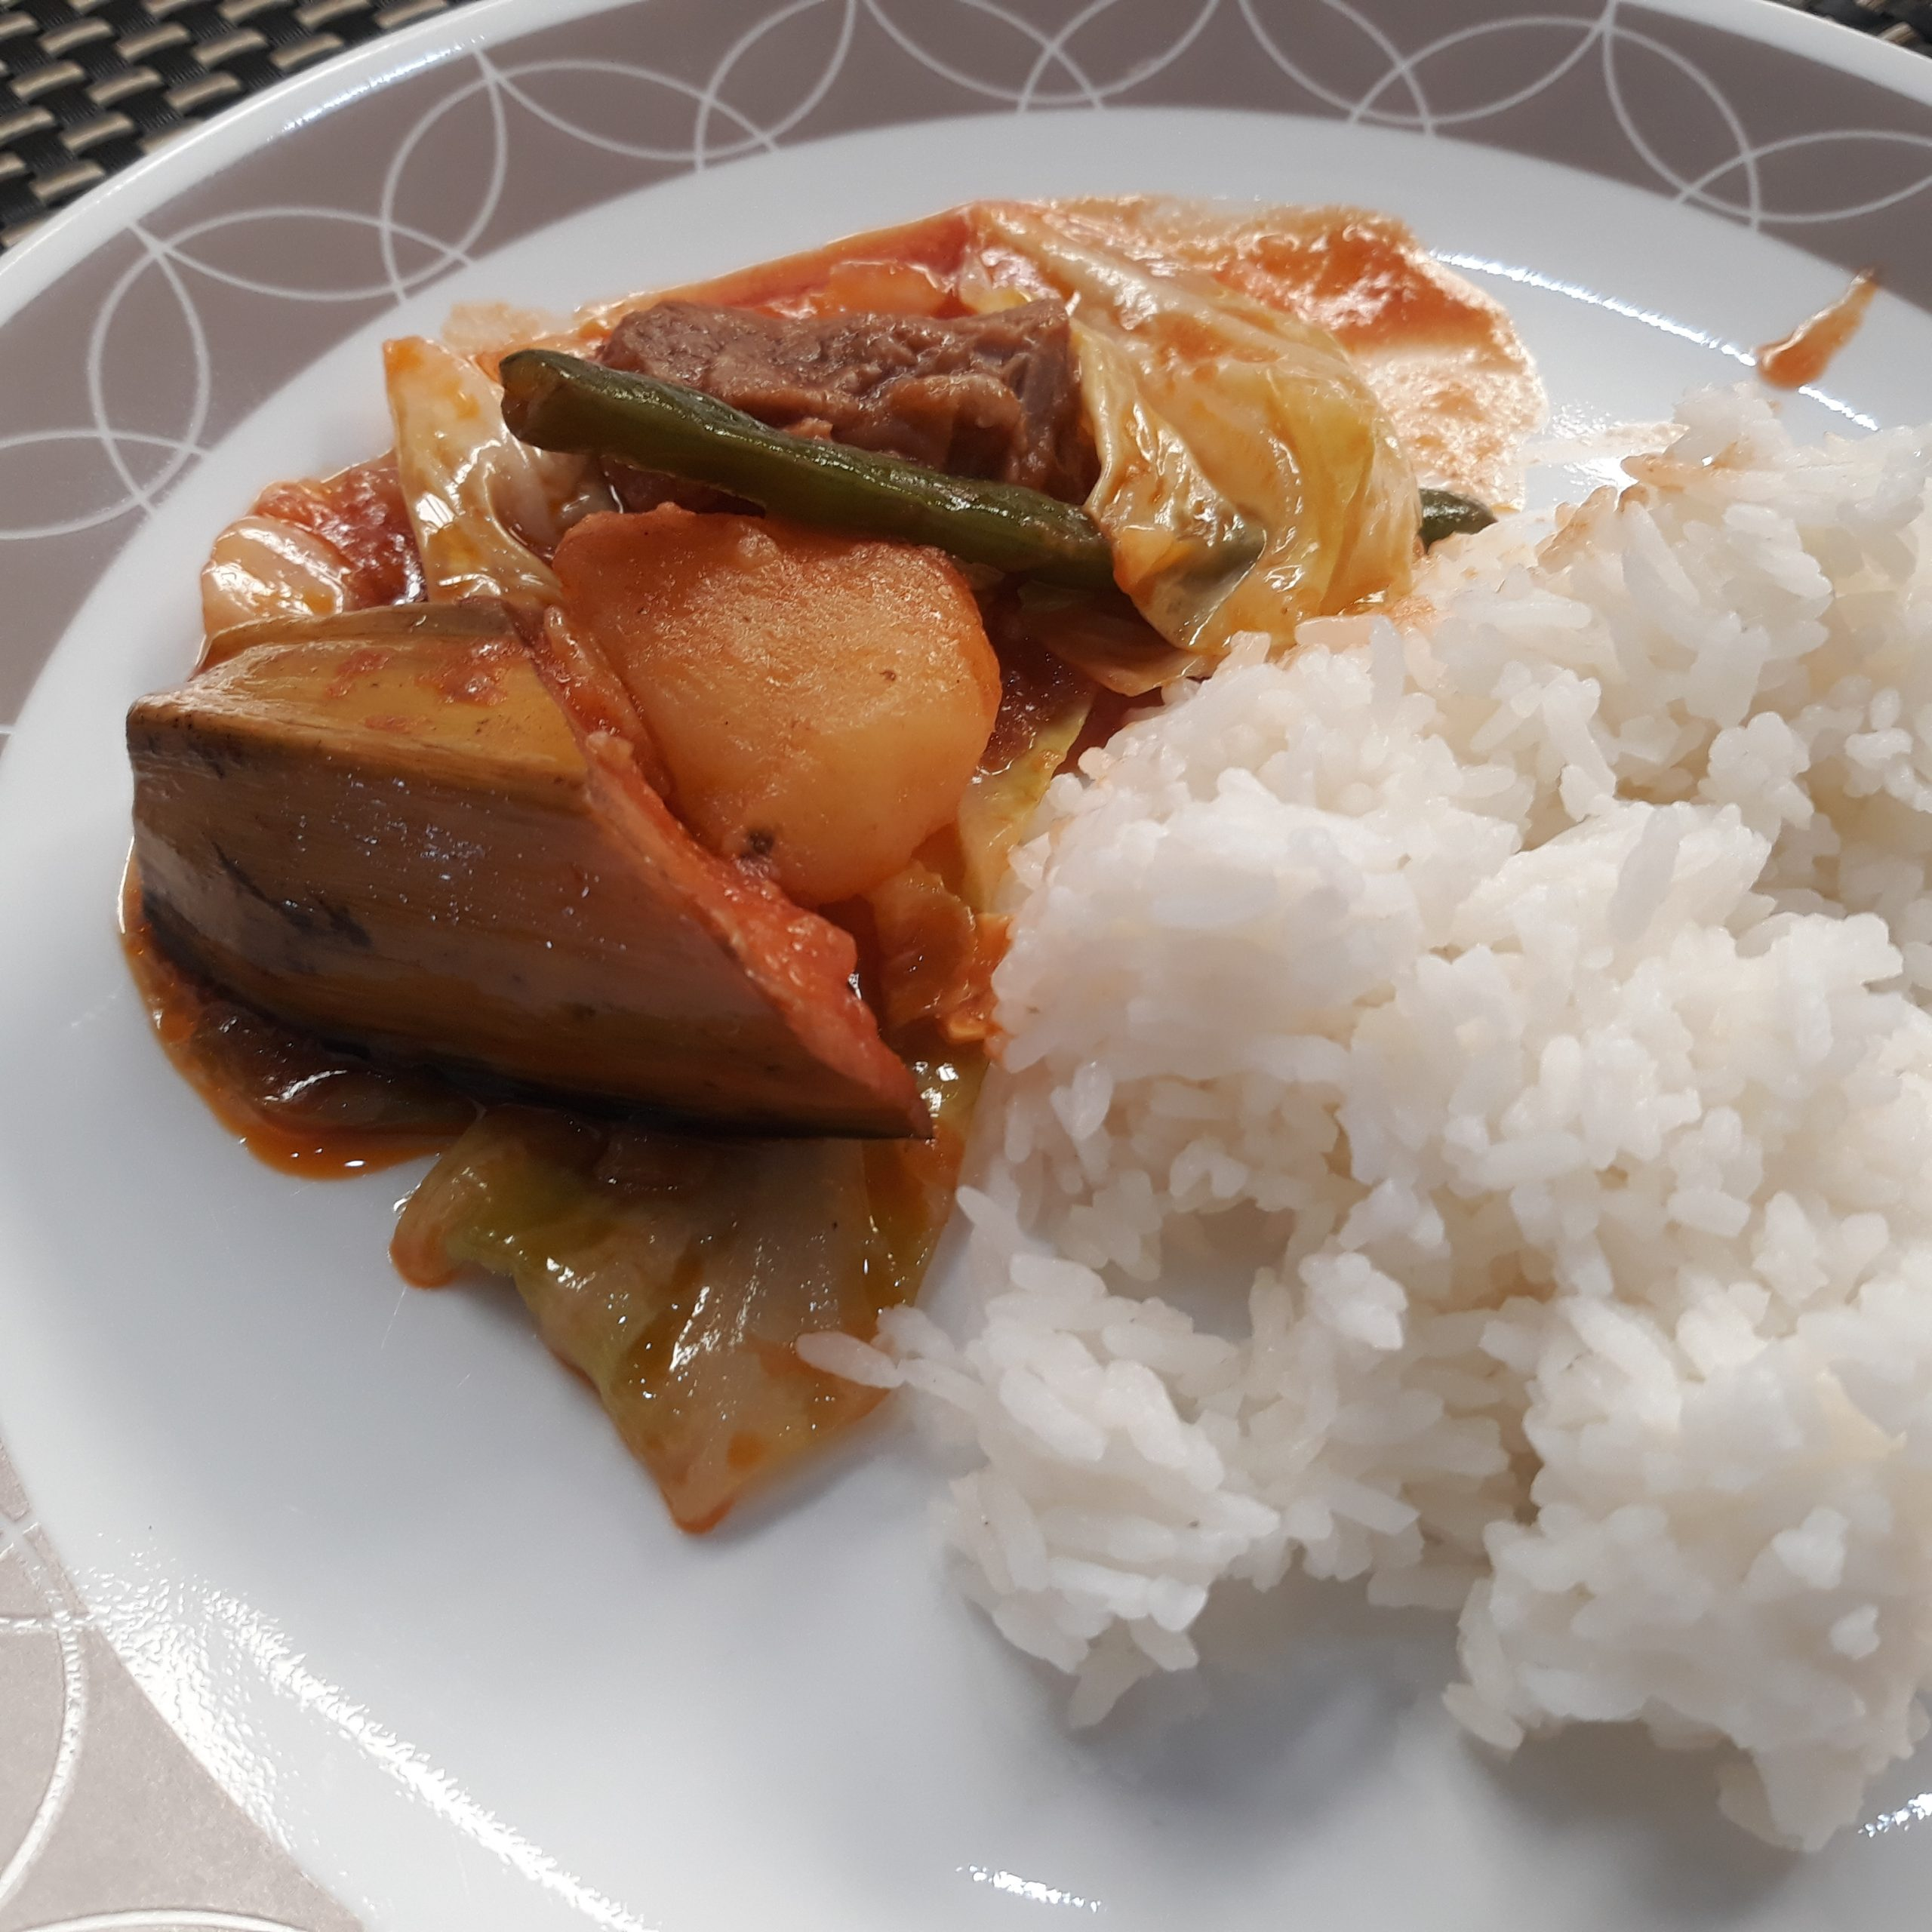 Pochero with rice showing half of a saging na saba with peel.